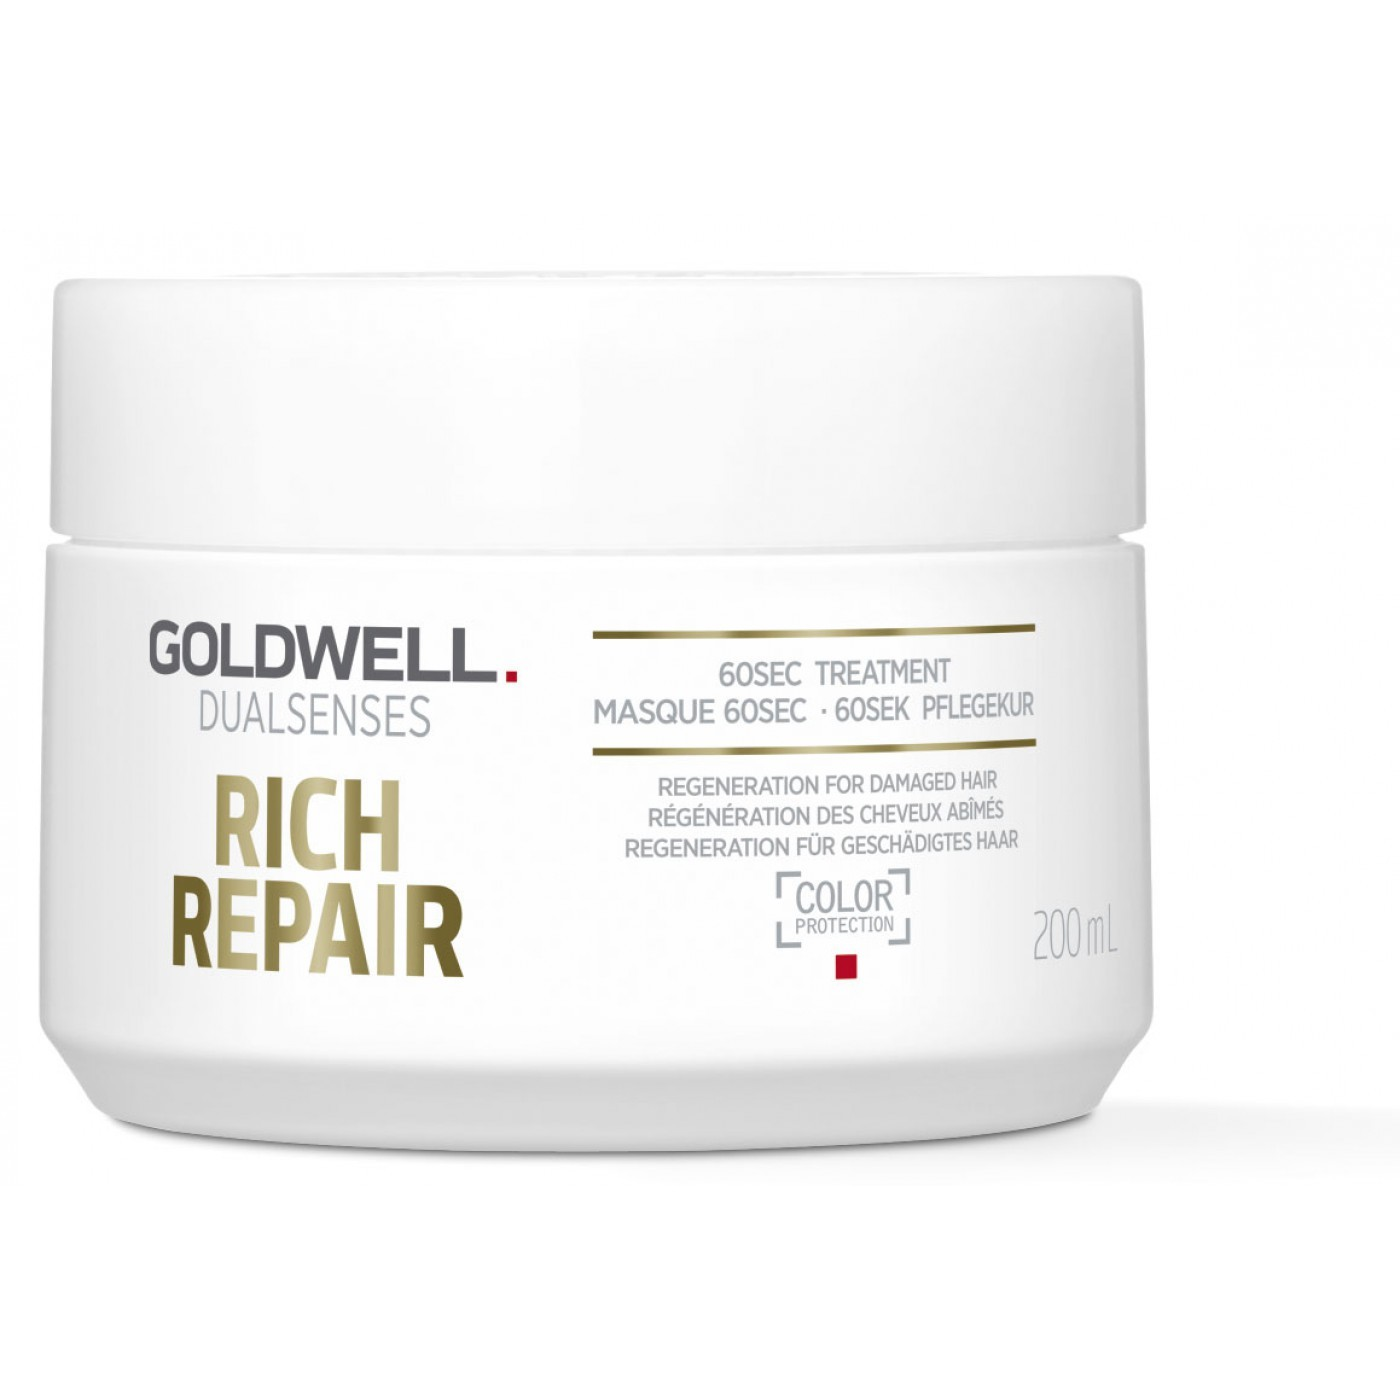 goldwell-dualsenses-rich-repair-60sec-treatment-200ml